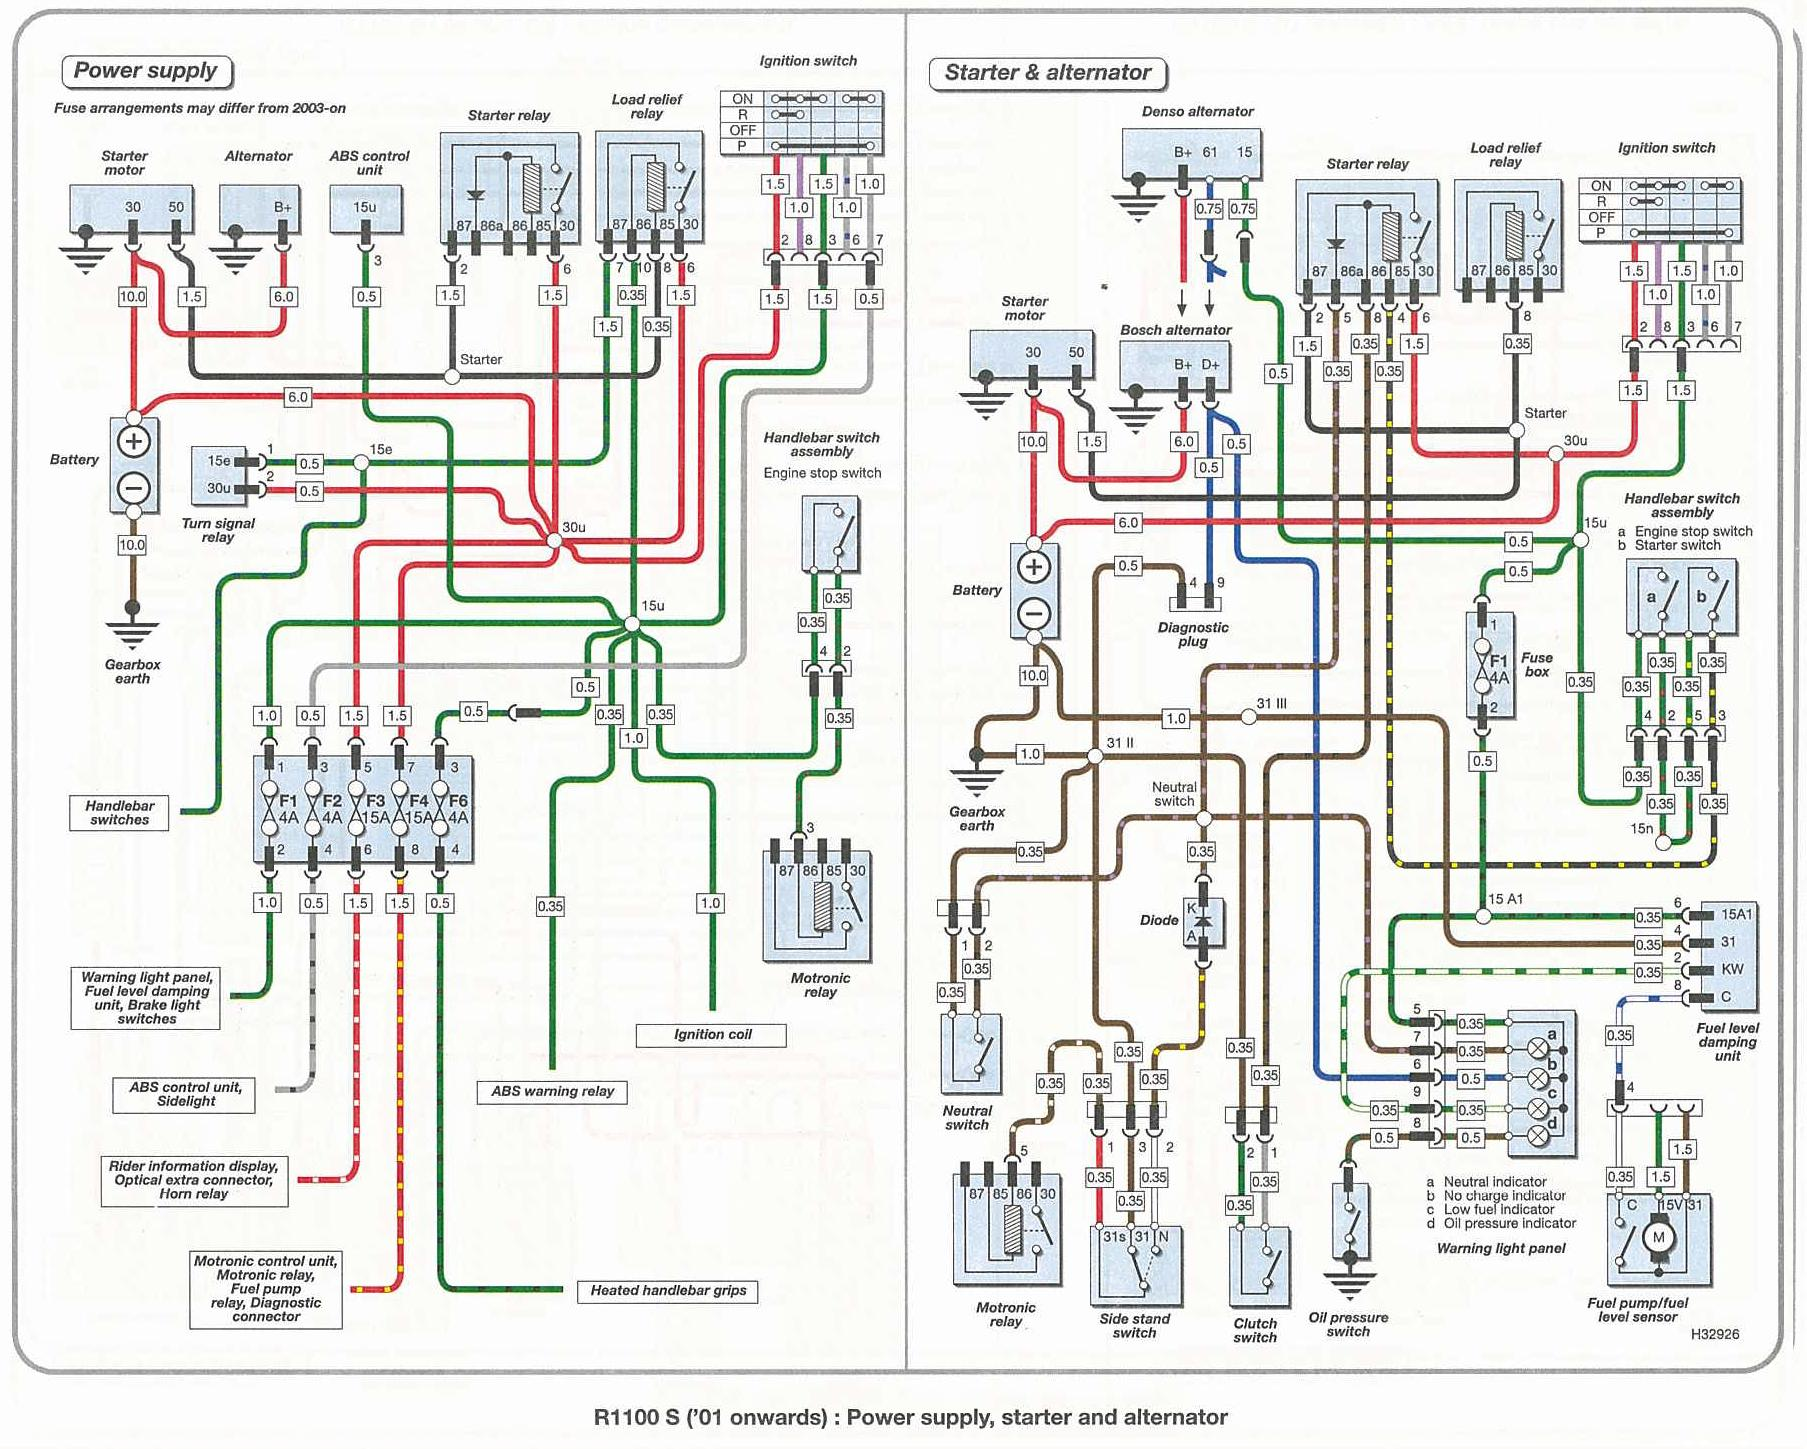 wiring05 2005 bmw f650gs wiring diagram cbr600f4i wiring diagram \u2022 wiring 2001 indian chief wiring diagram at mifinder.co